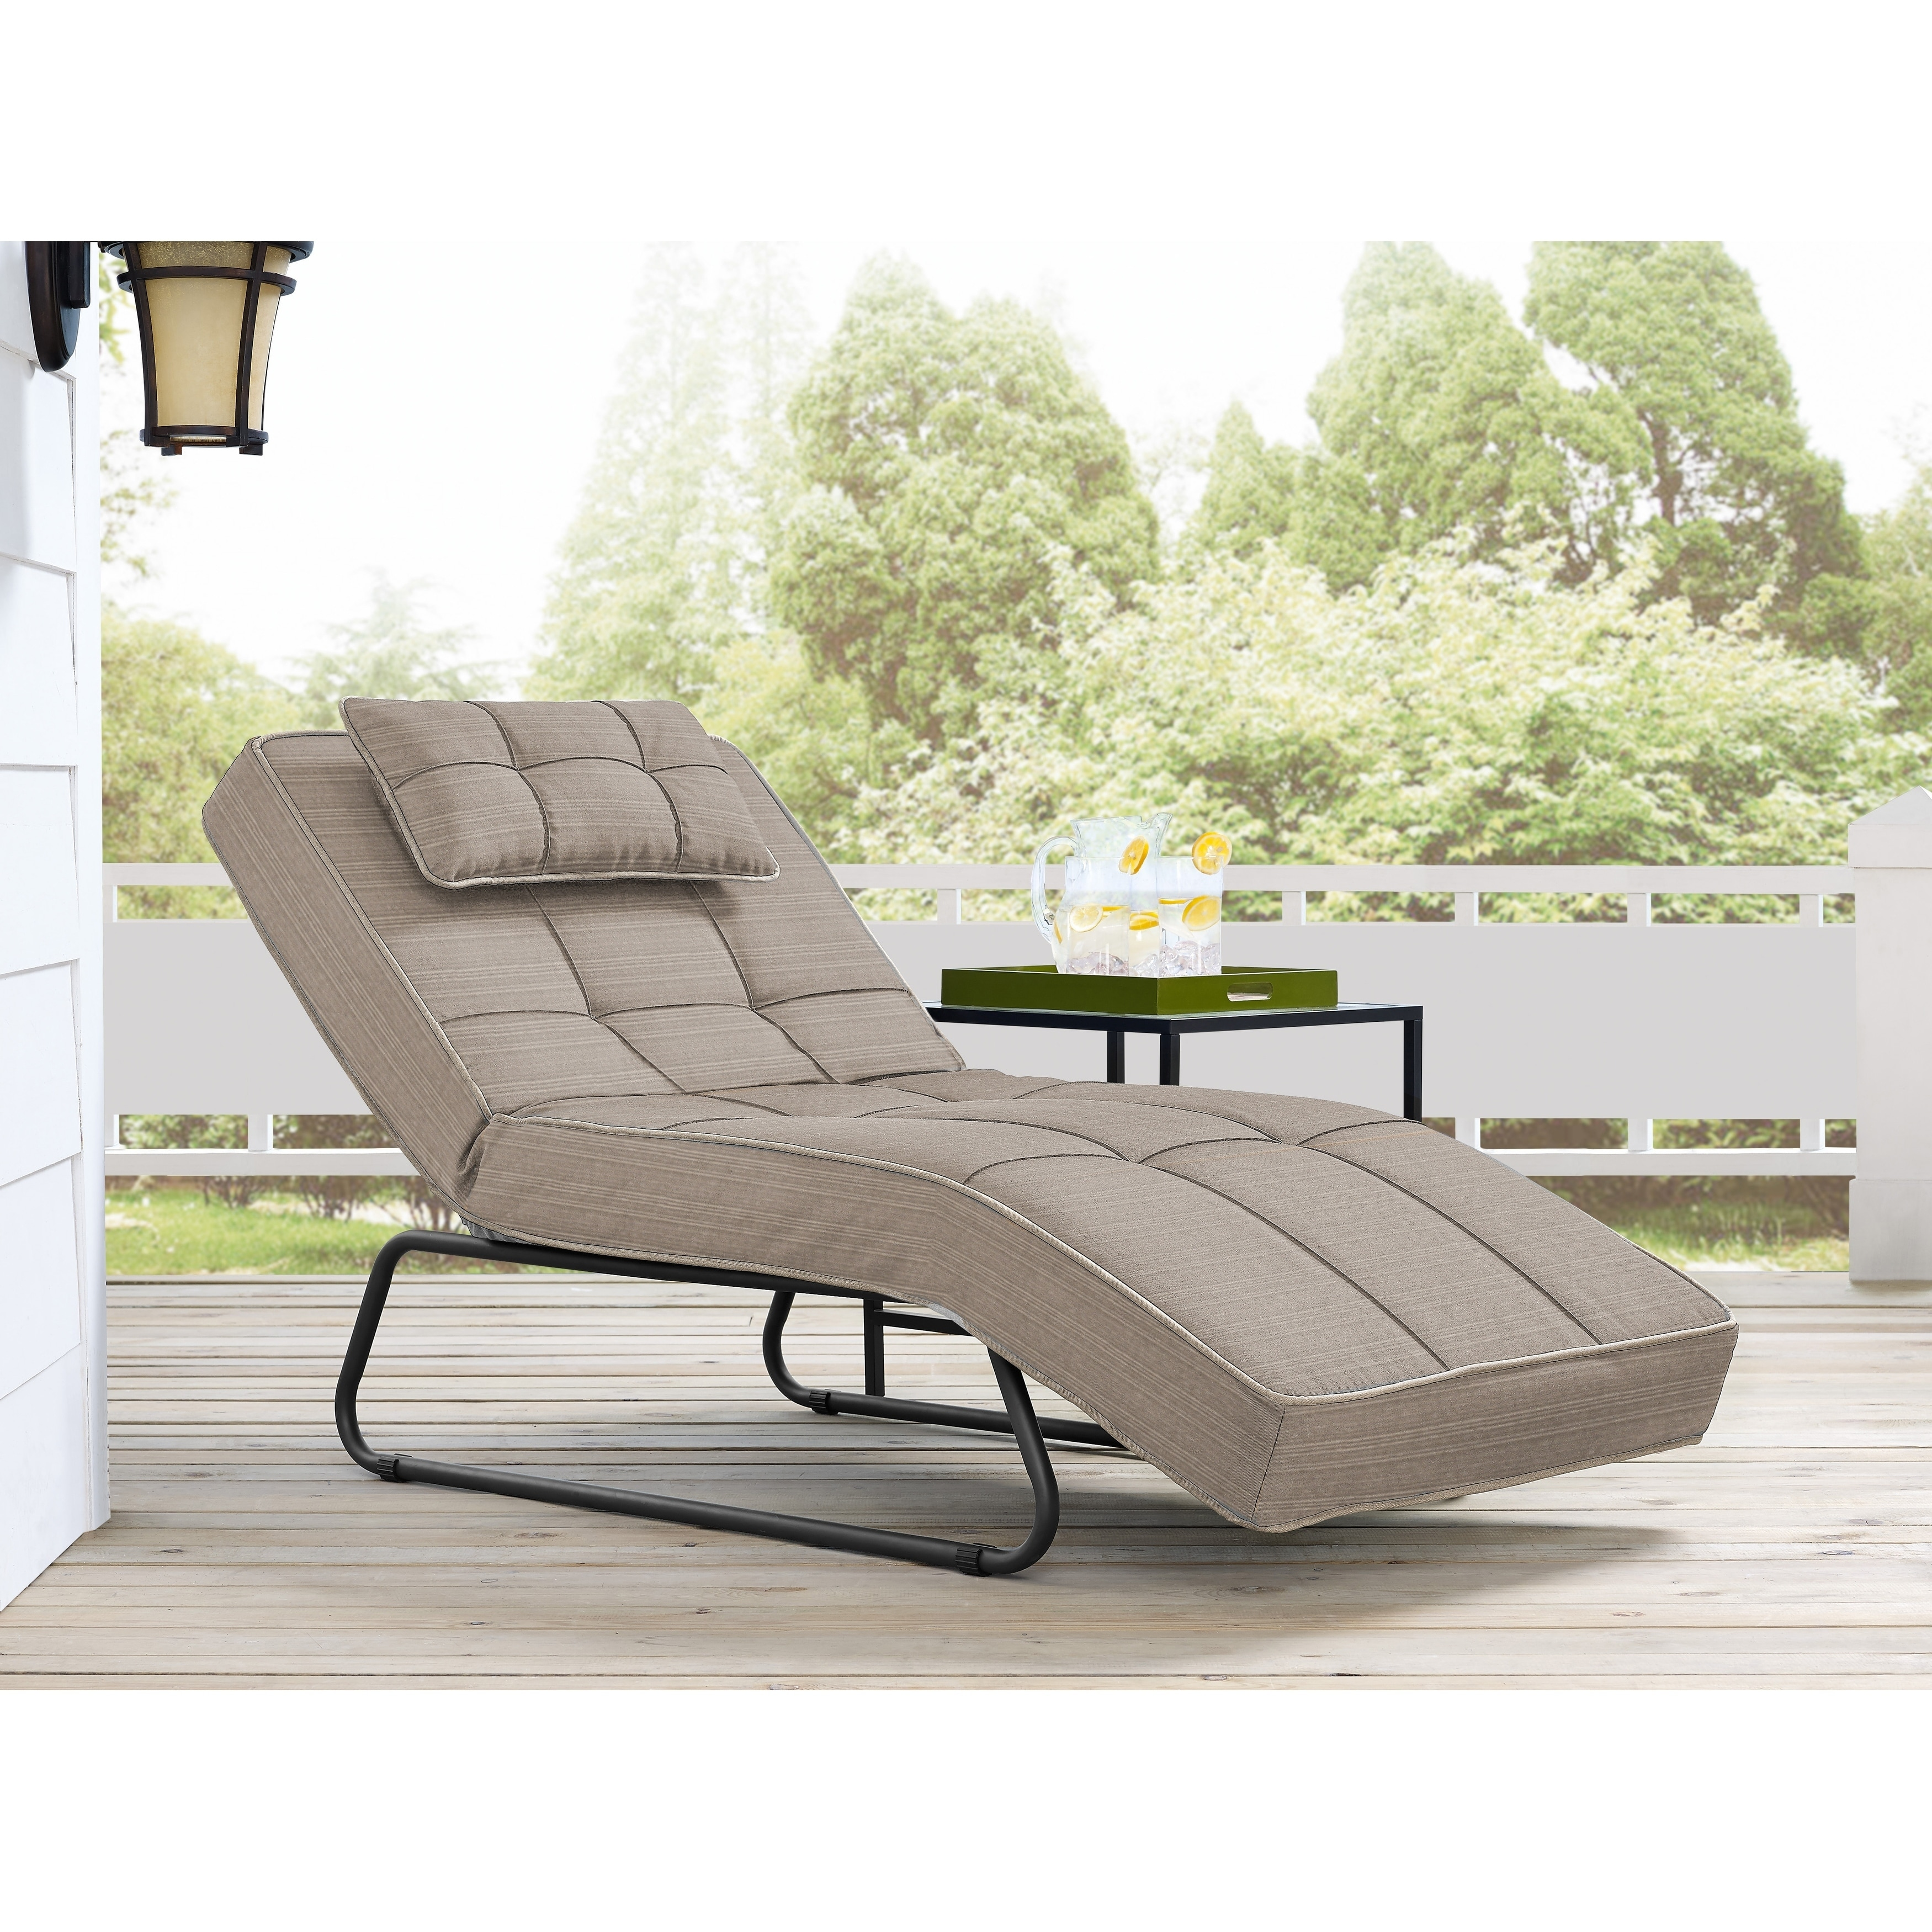 Relax A Lounge Laguna Pool And Deck Convertible Chaise Cabana Sand (Tan)